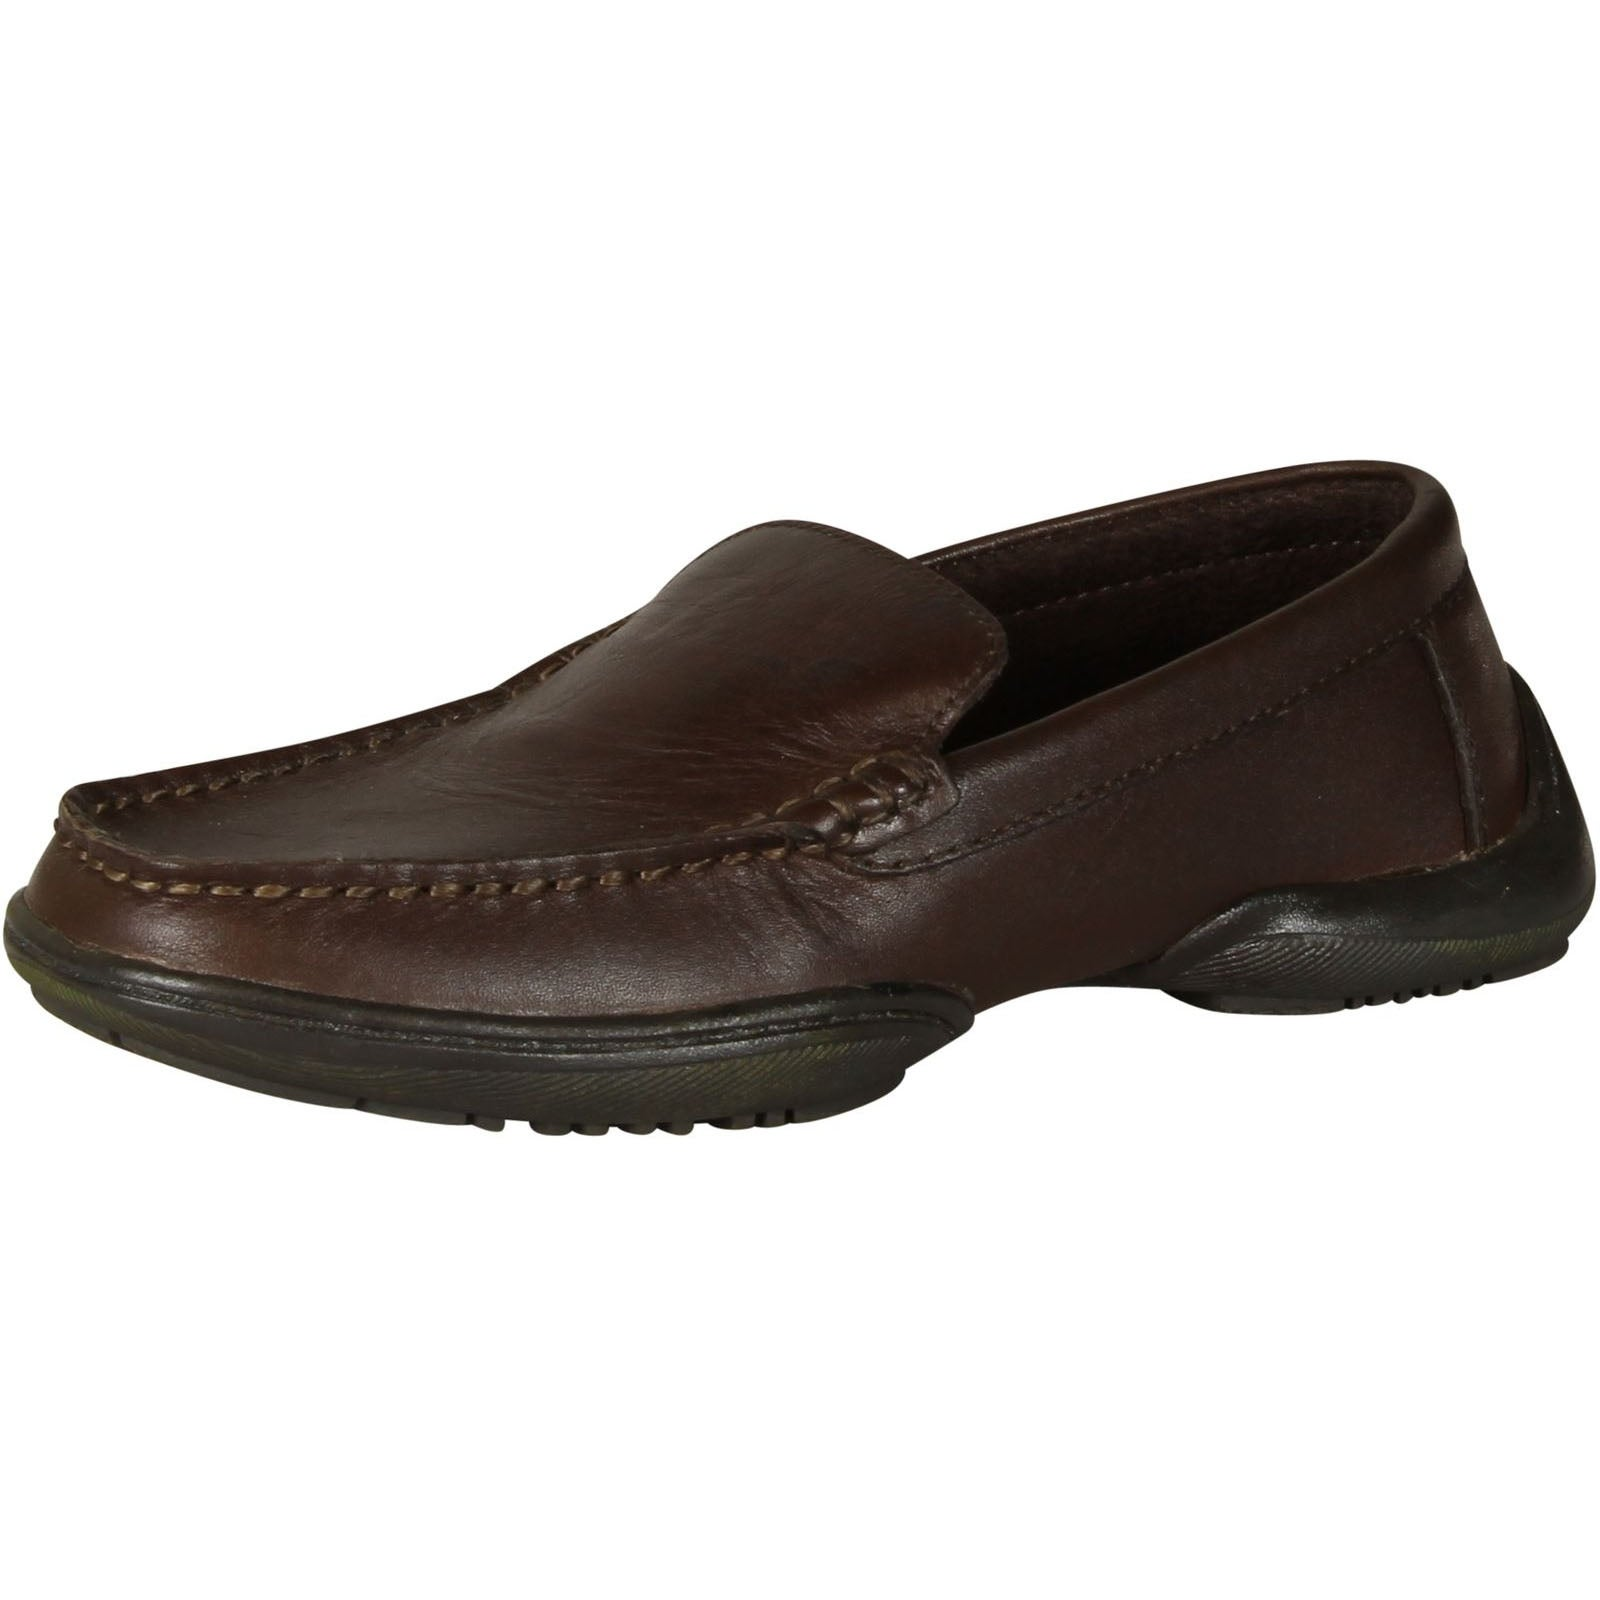 Kenneth Cole Reaction Driving Dime Loafer